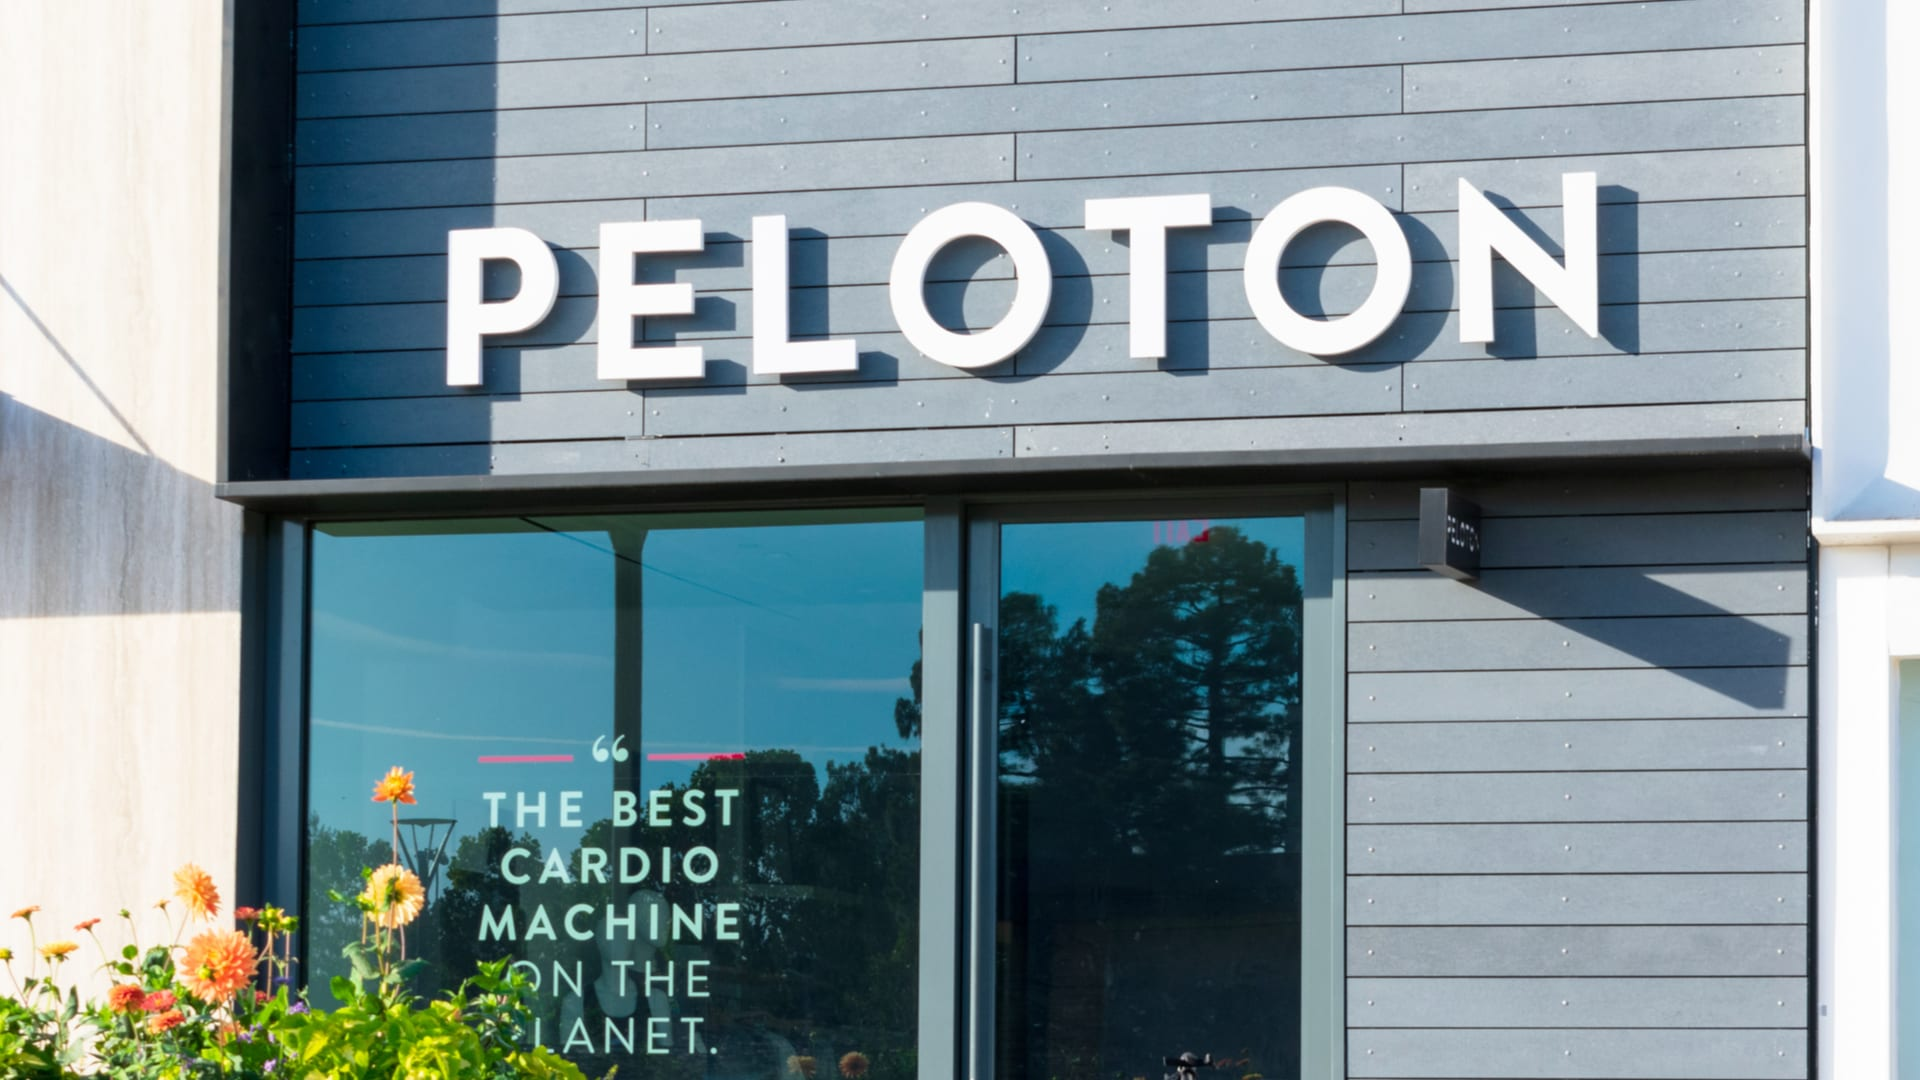 PTON Peloton Interactive Inc Q4 FY20 Earnings Call